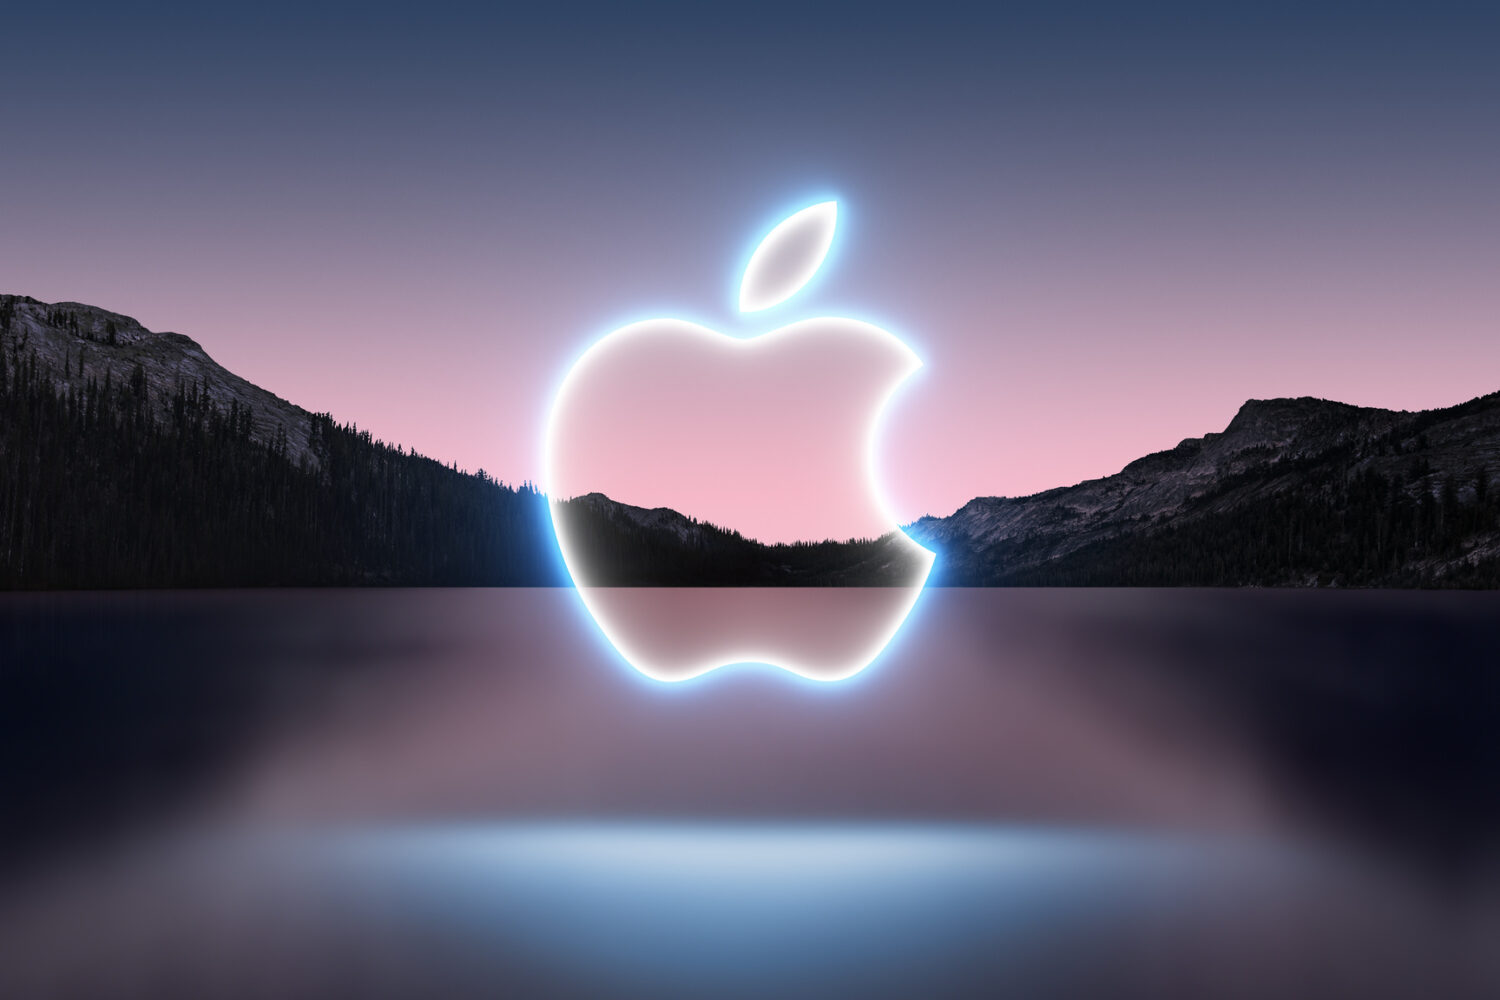 Promotional illustration for the September 14 iPhone 13 event showing a glowing Apple logo outline set against lake scenery shot in the dusk